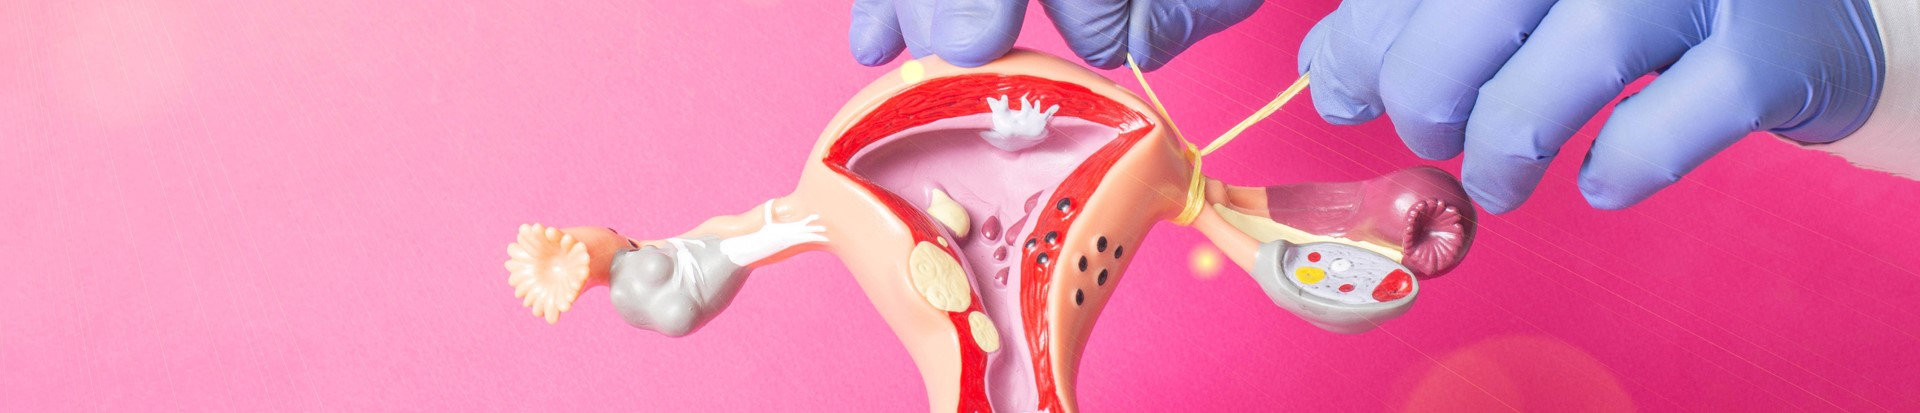 Photo of a hand tying a model uterus with string